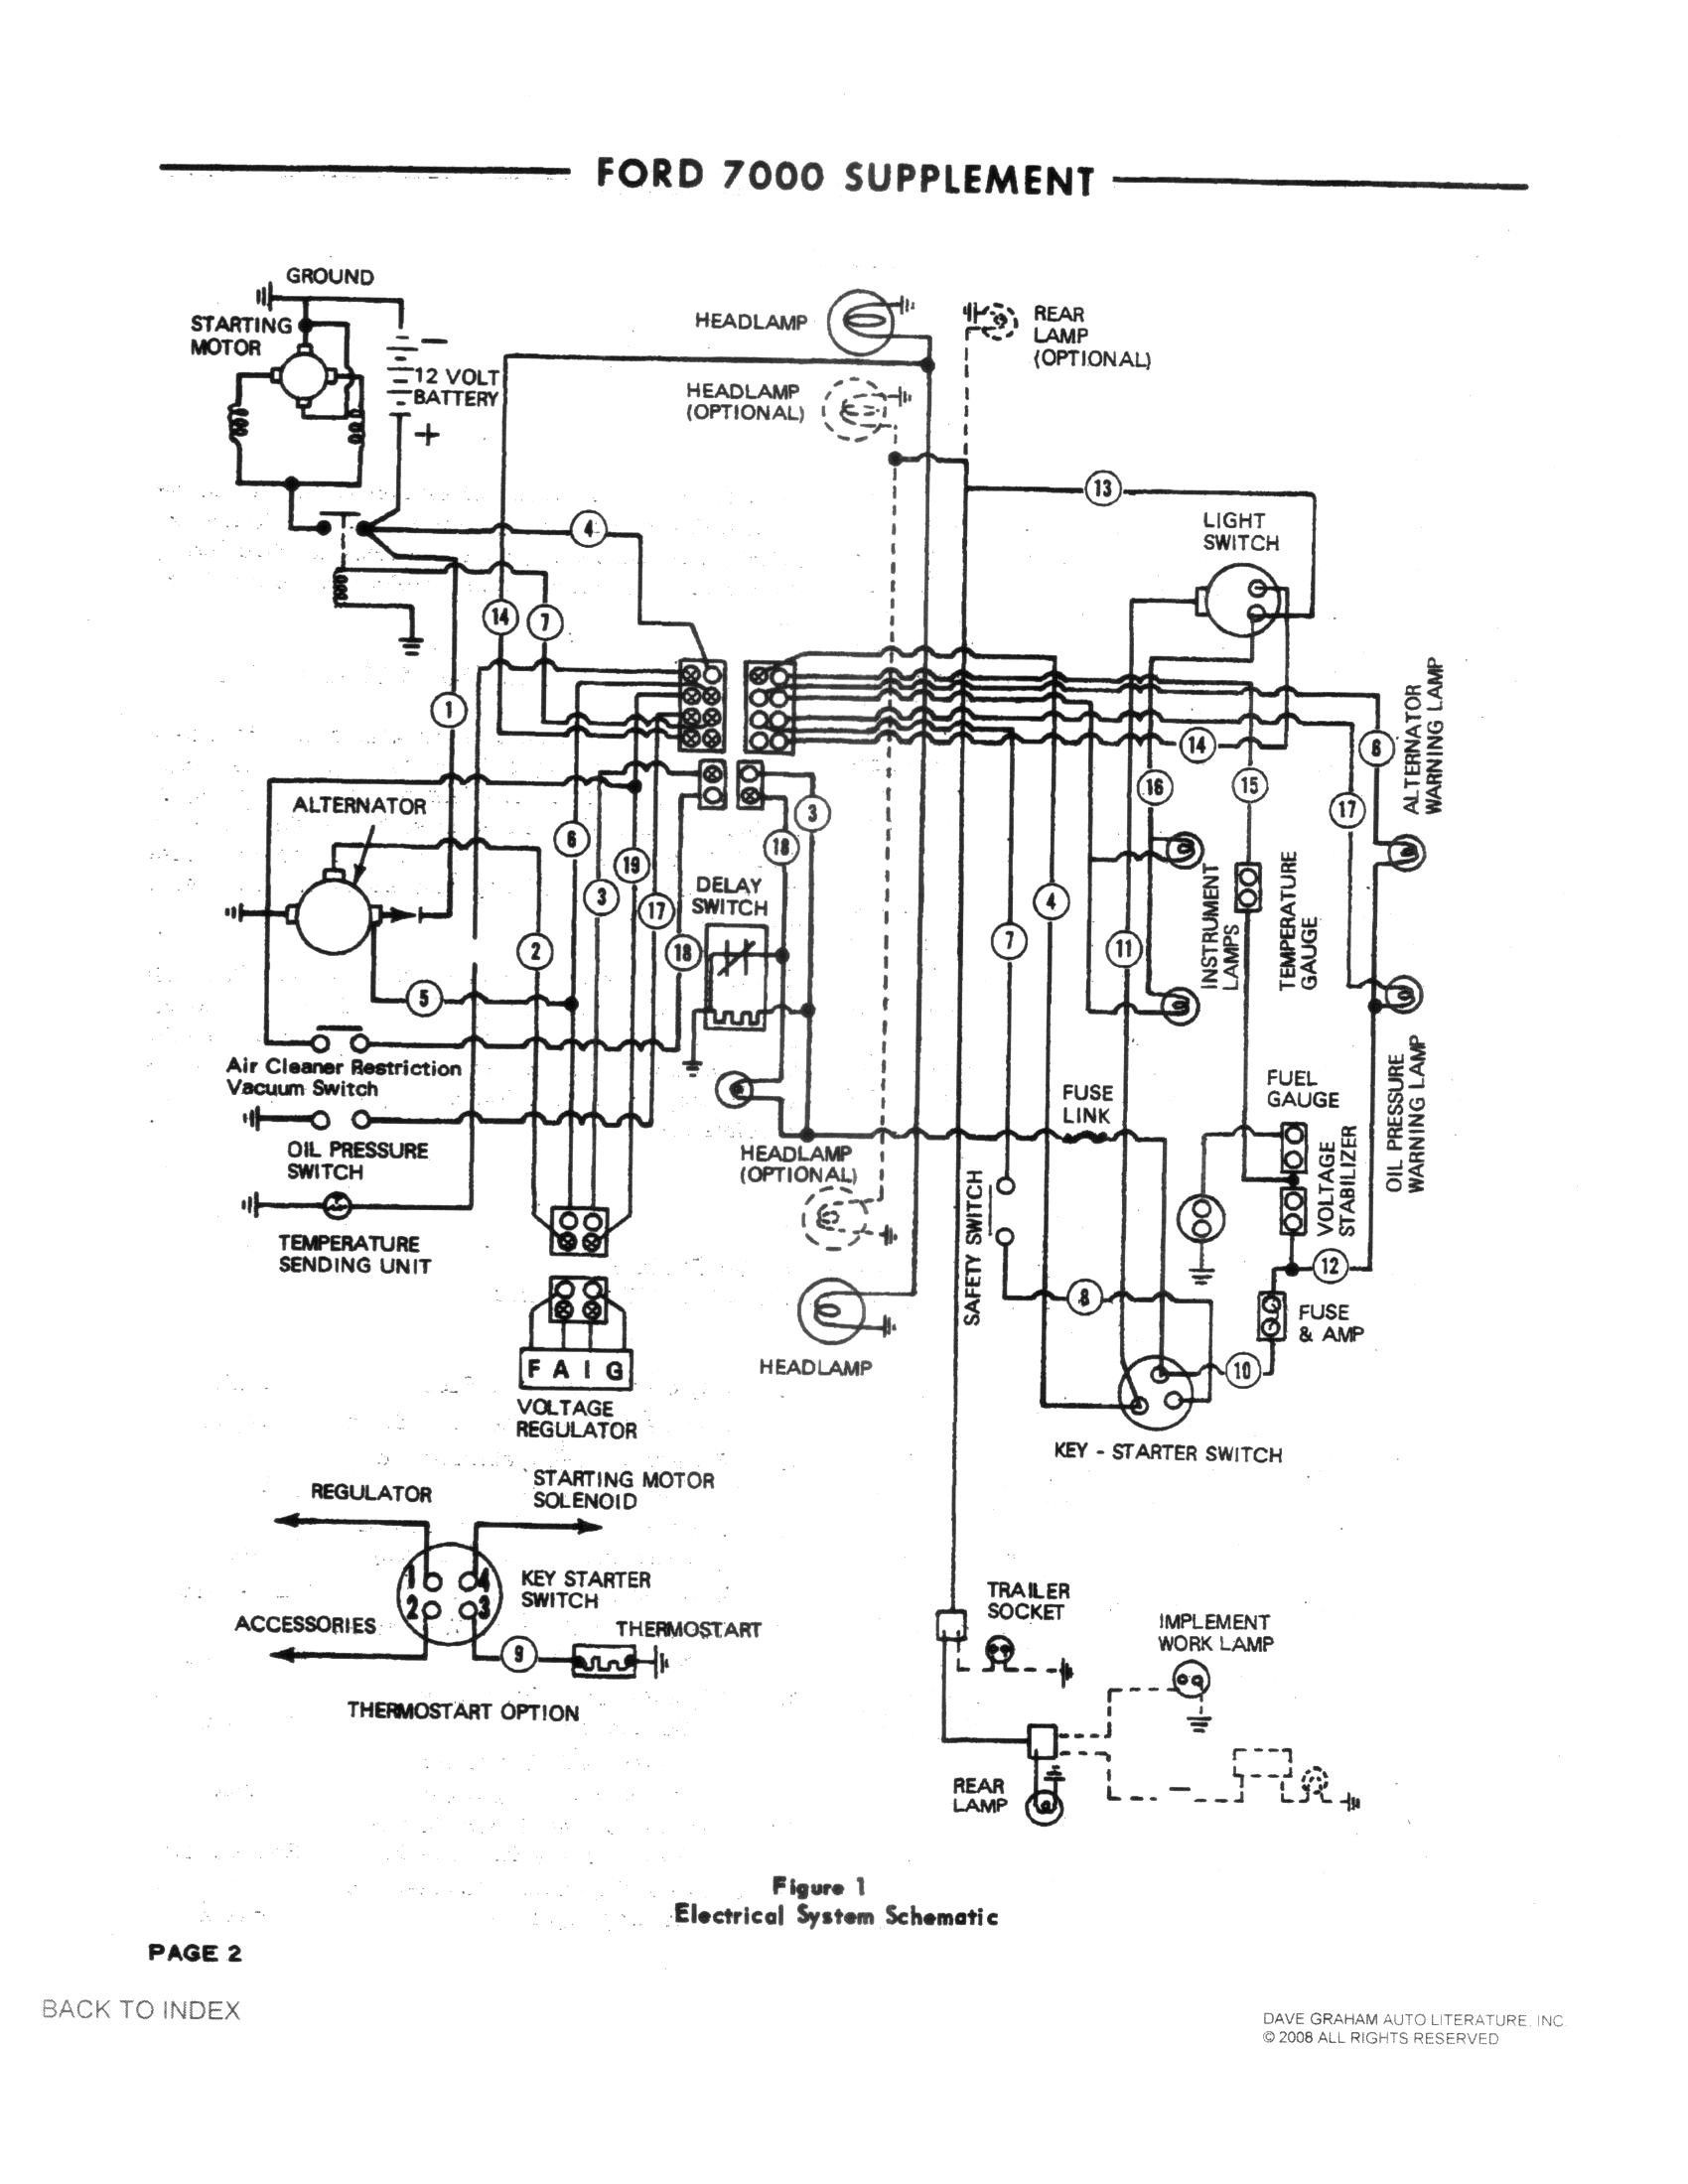 Unique Motorola Alternator Wiring Diagram John Deere